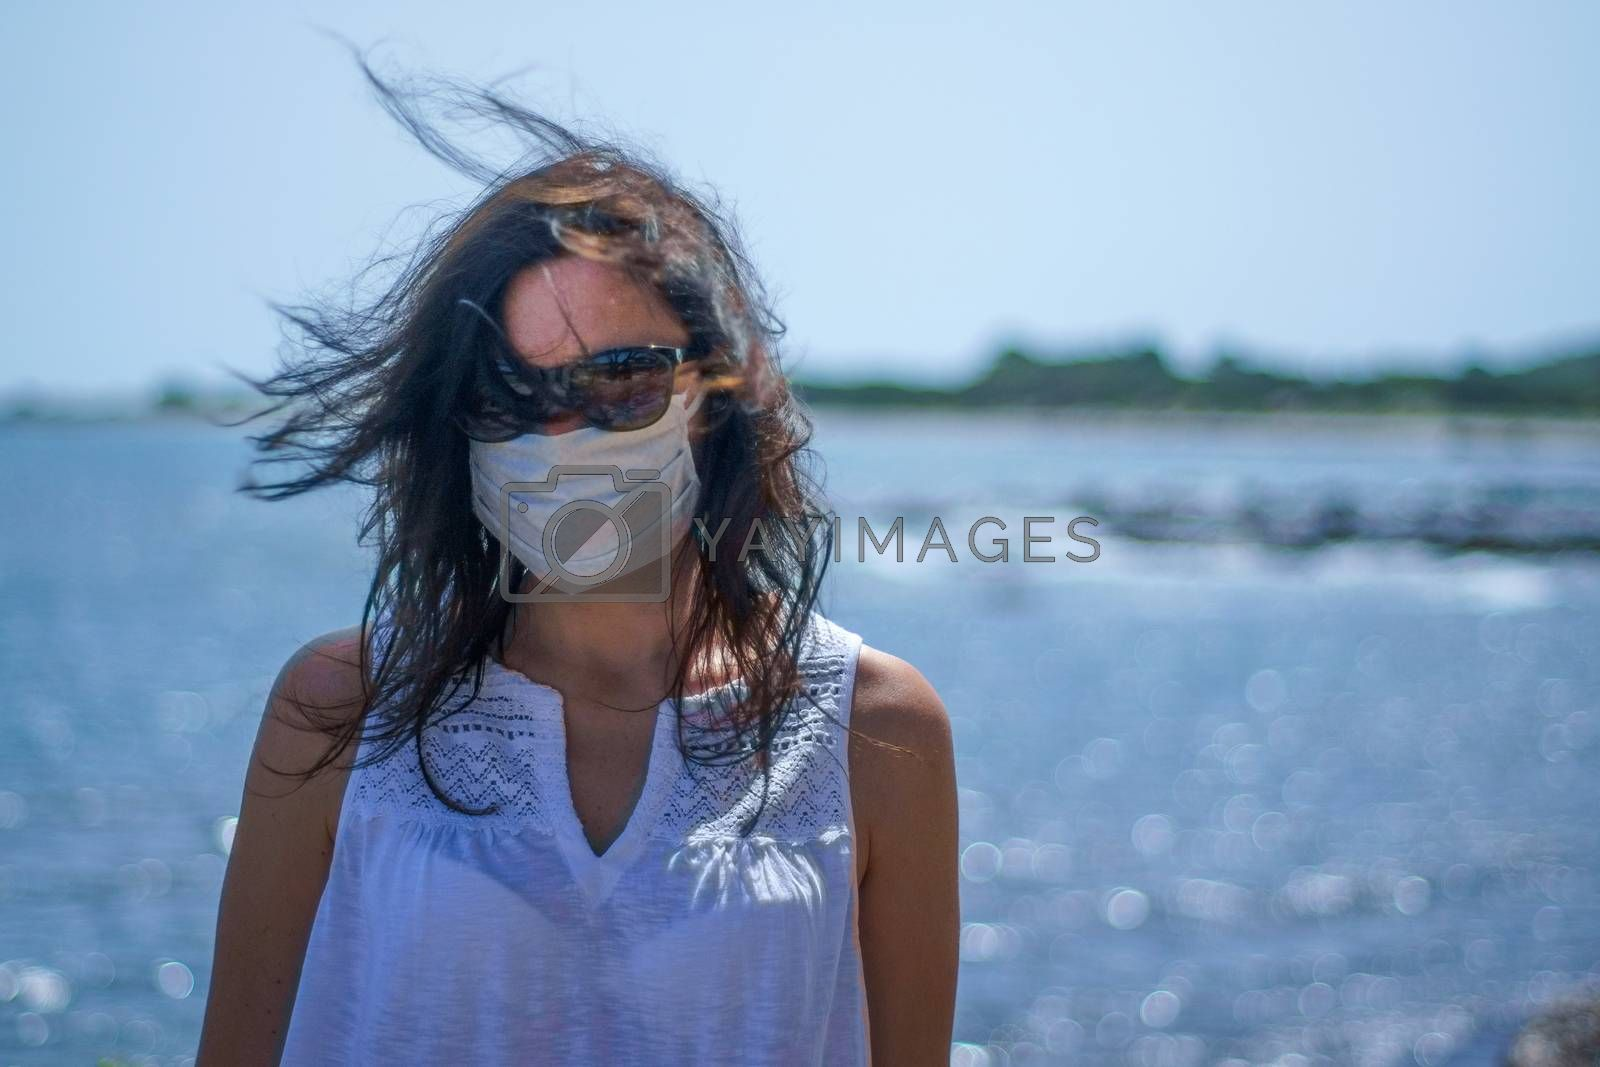 Coronavirus seaside holidays: half-length shot of a woman at the beach with the mask for Covid-19 pandemic with cloudy sky